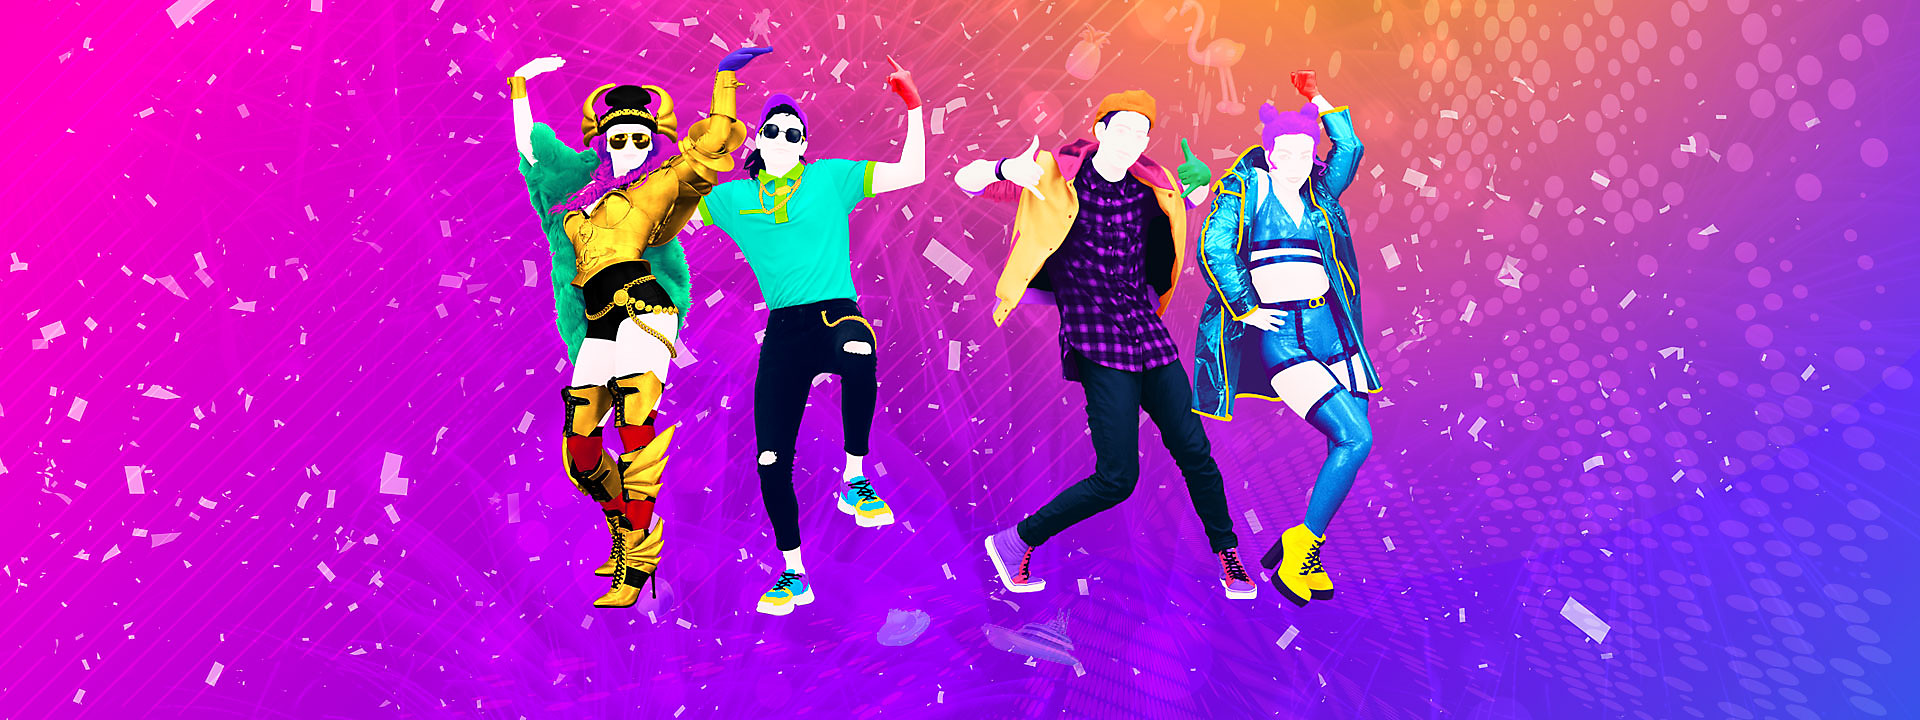 Banner con héroe de Just Dance 2020